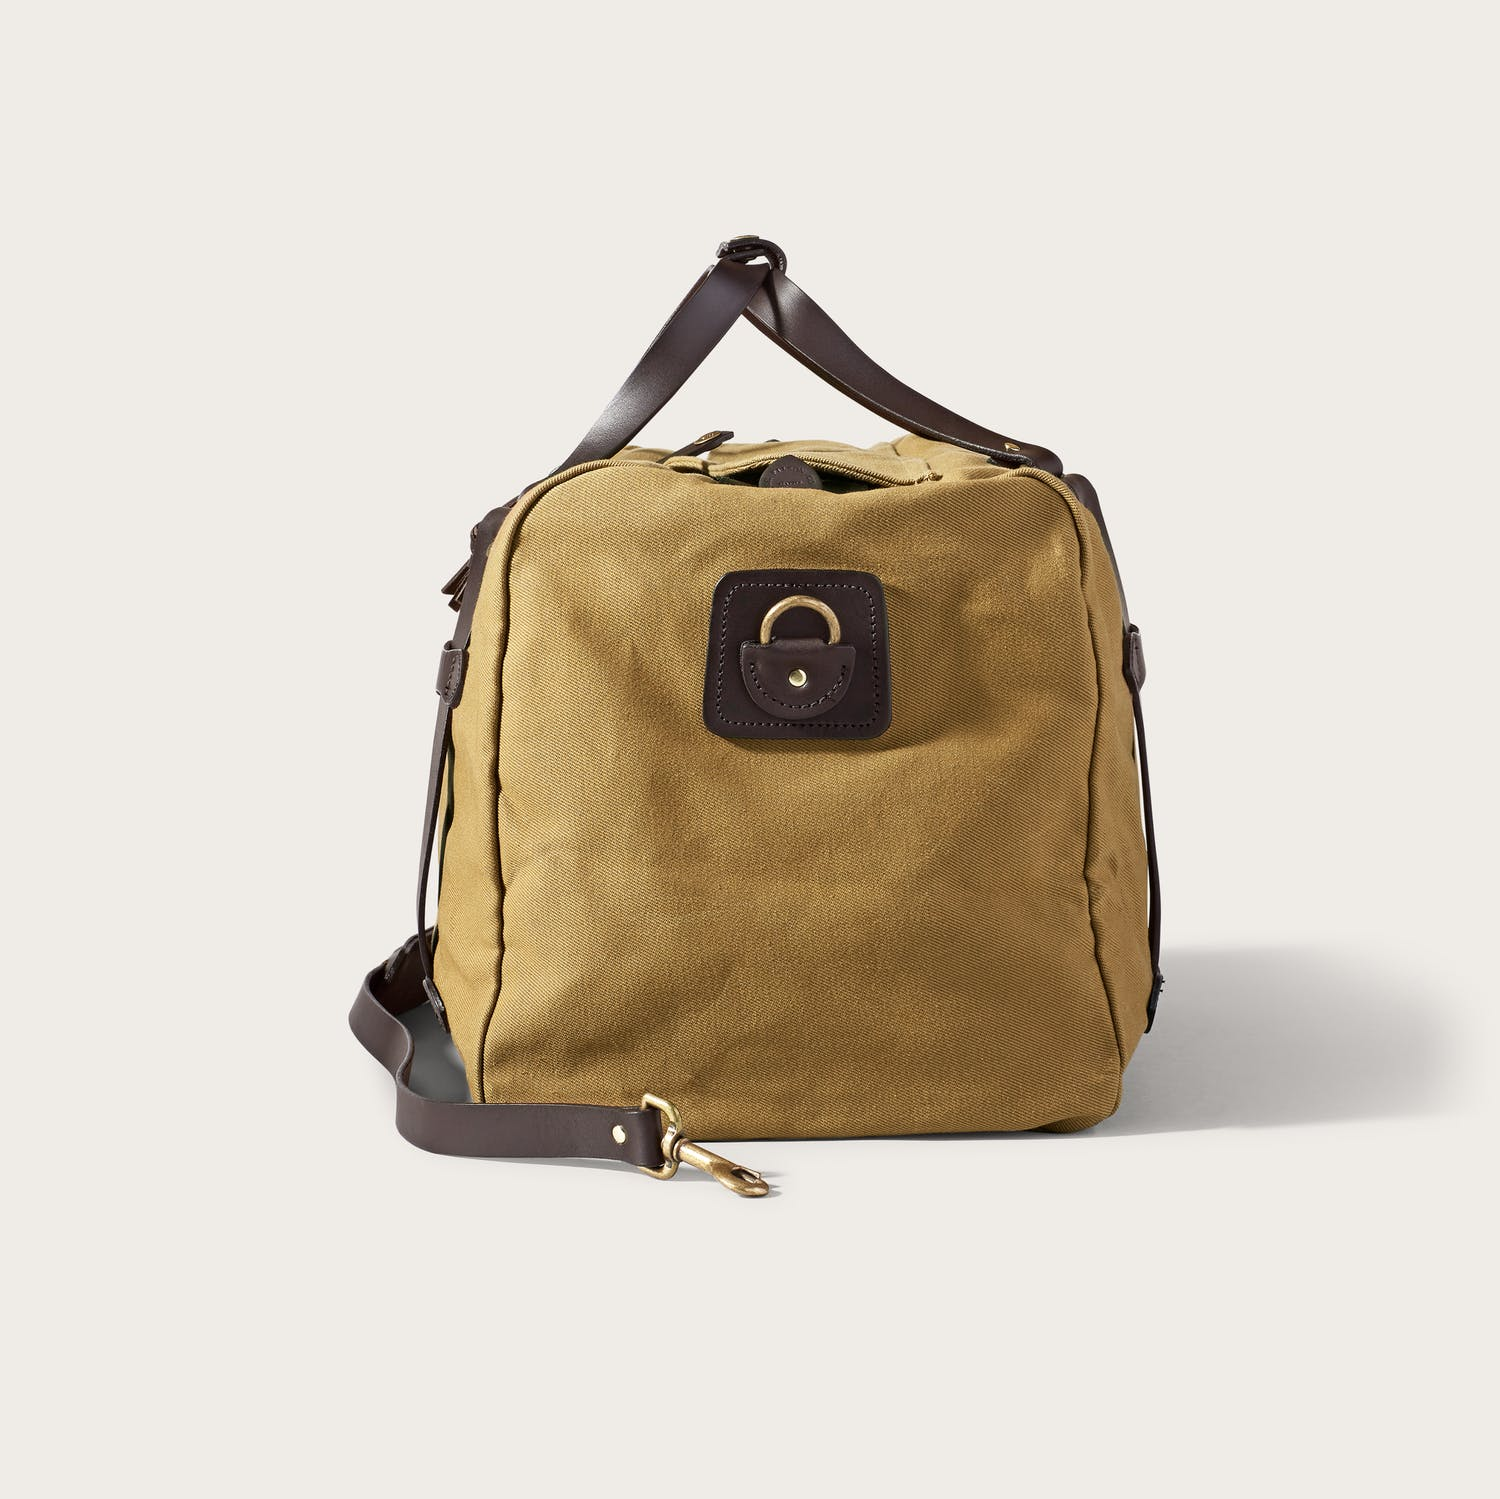 Filson - Medium Duffle - Tan - The Populess Company